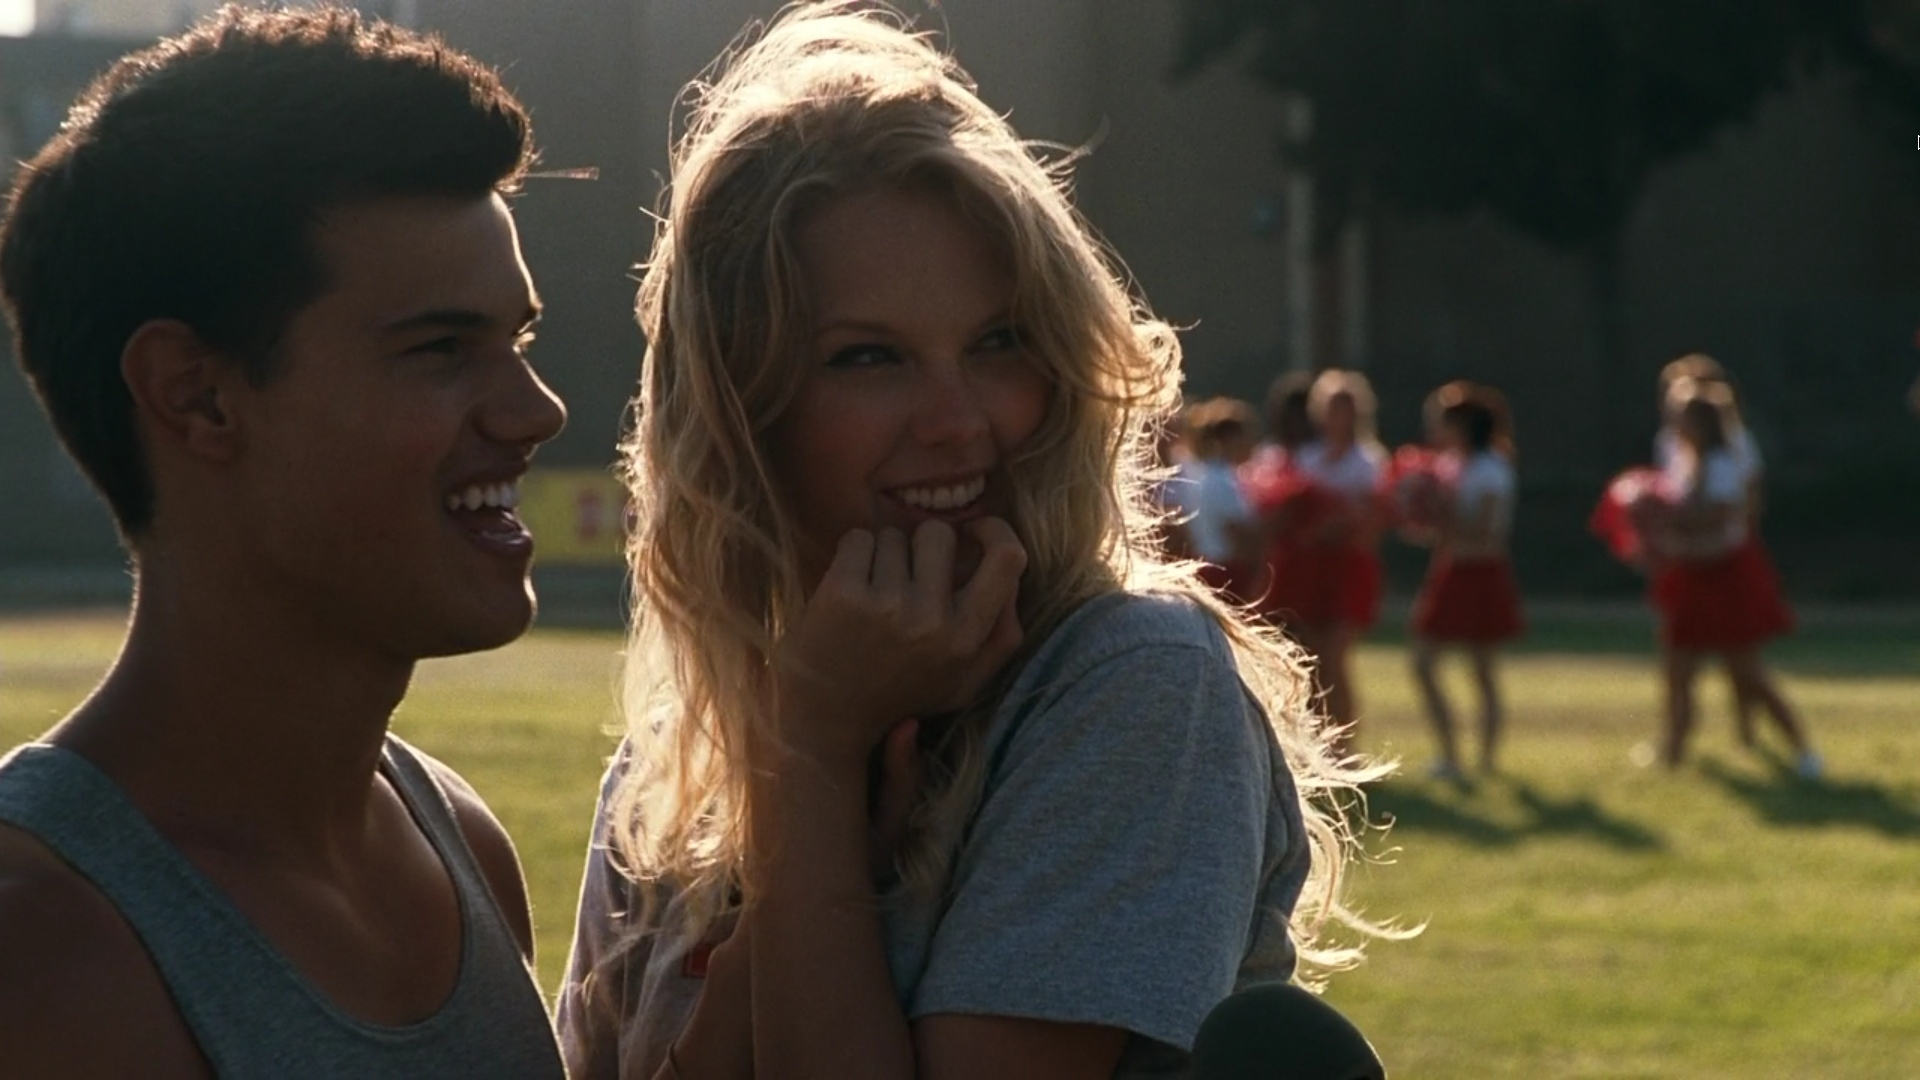 Cute Couples Wallpaper Free Download Taylor Lautner And Taylor Swift Images Valentine S Day Hd